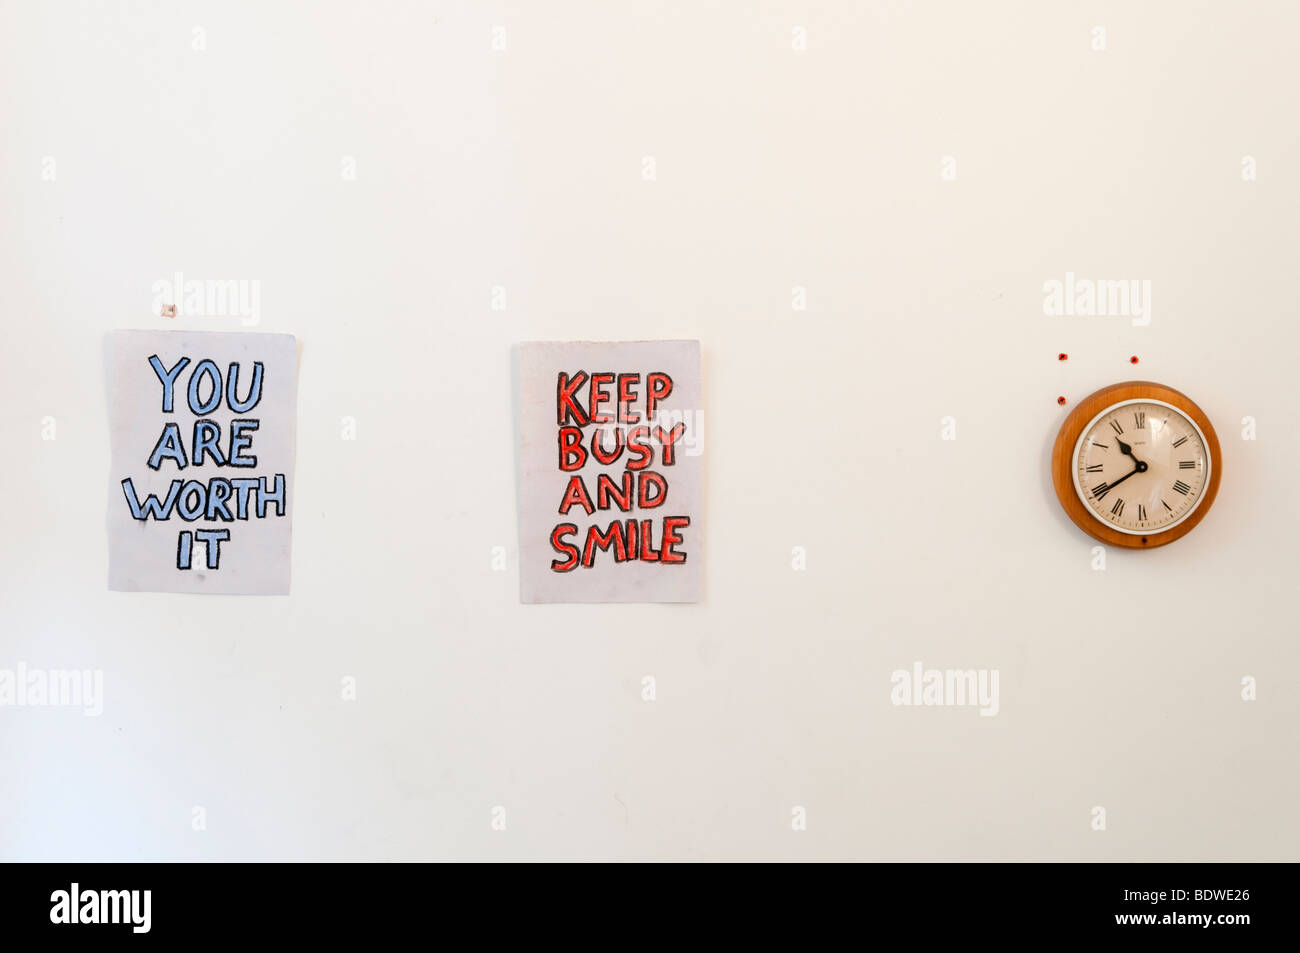 Motivational signs on wall of person suffering from depression, England, Britain, UK - Stock Image